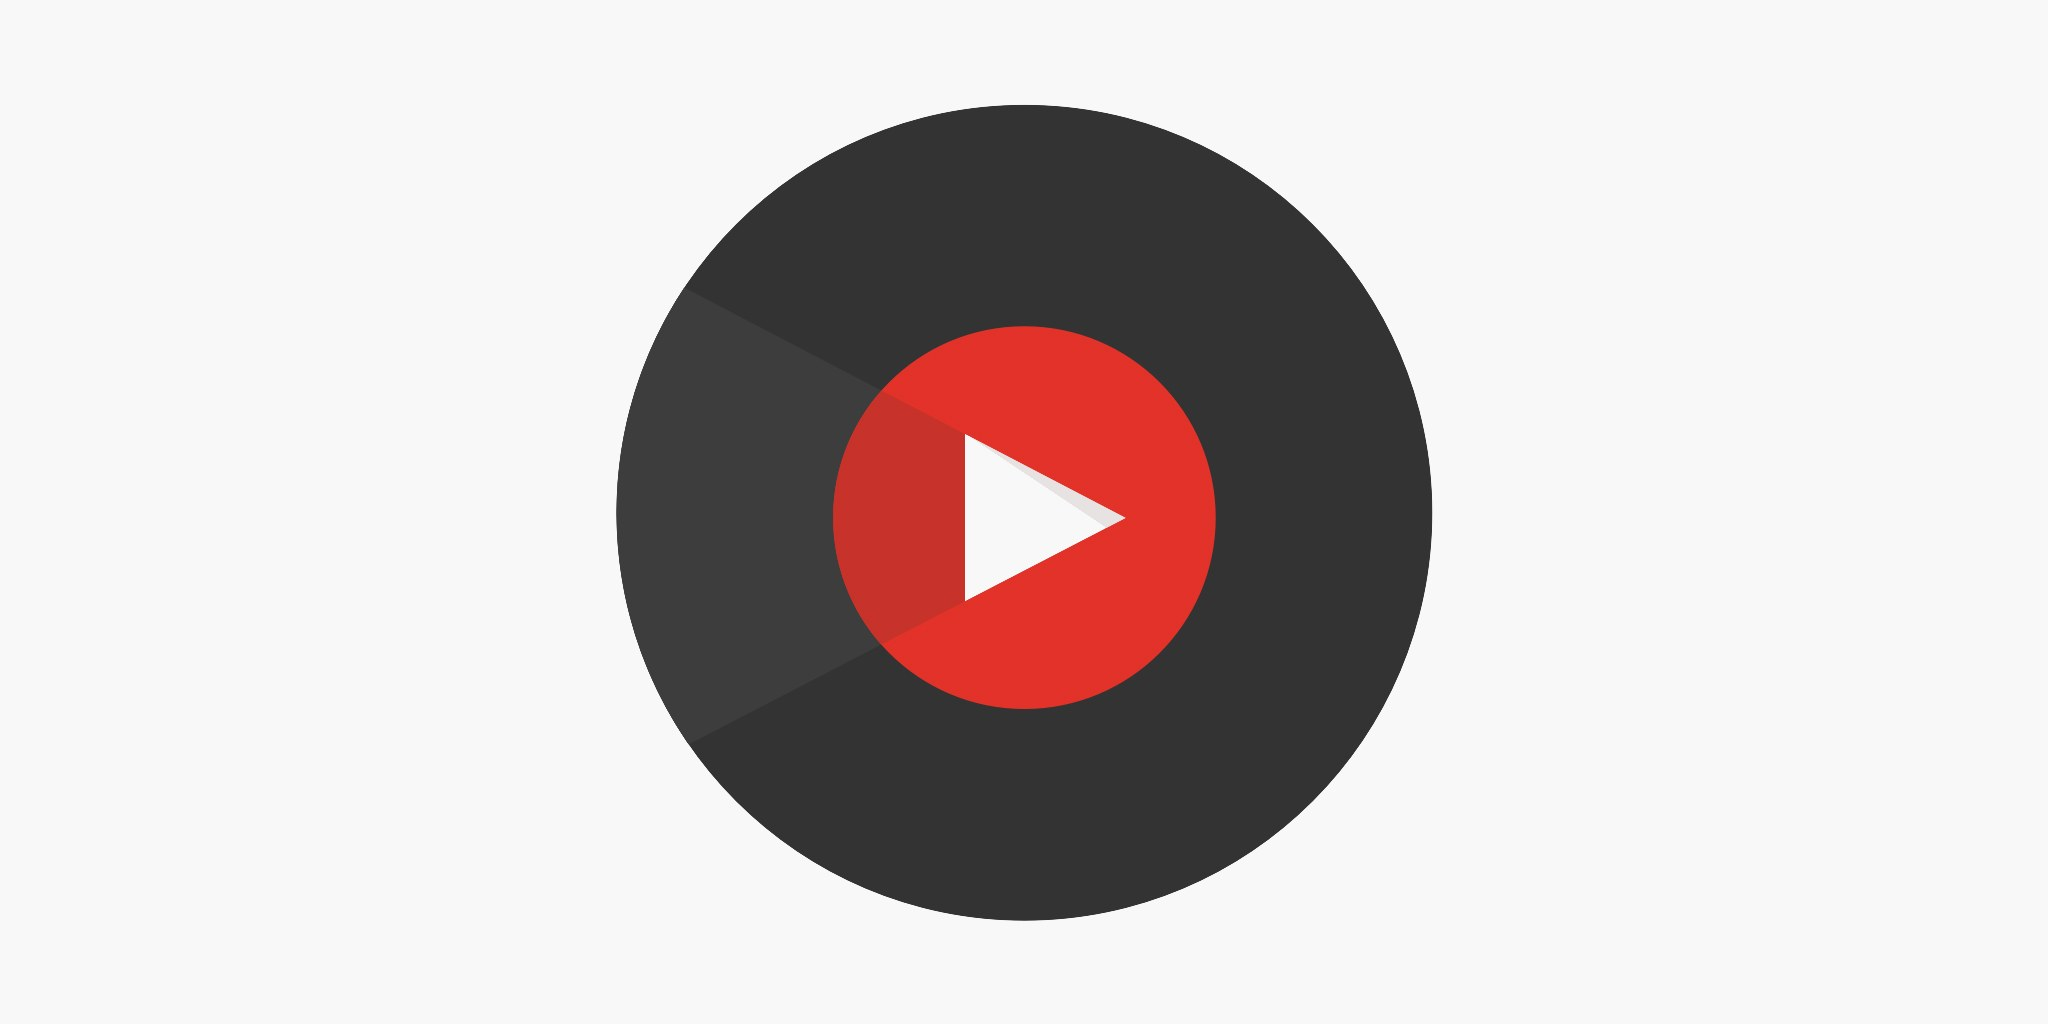 Youtube music will let users upload their own musc mspoweruser youtube music will let users upload their own musc stopboris Image collections